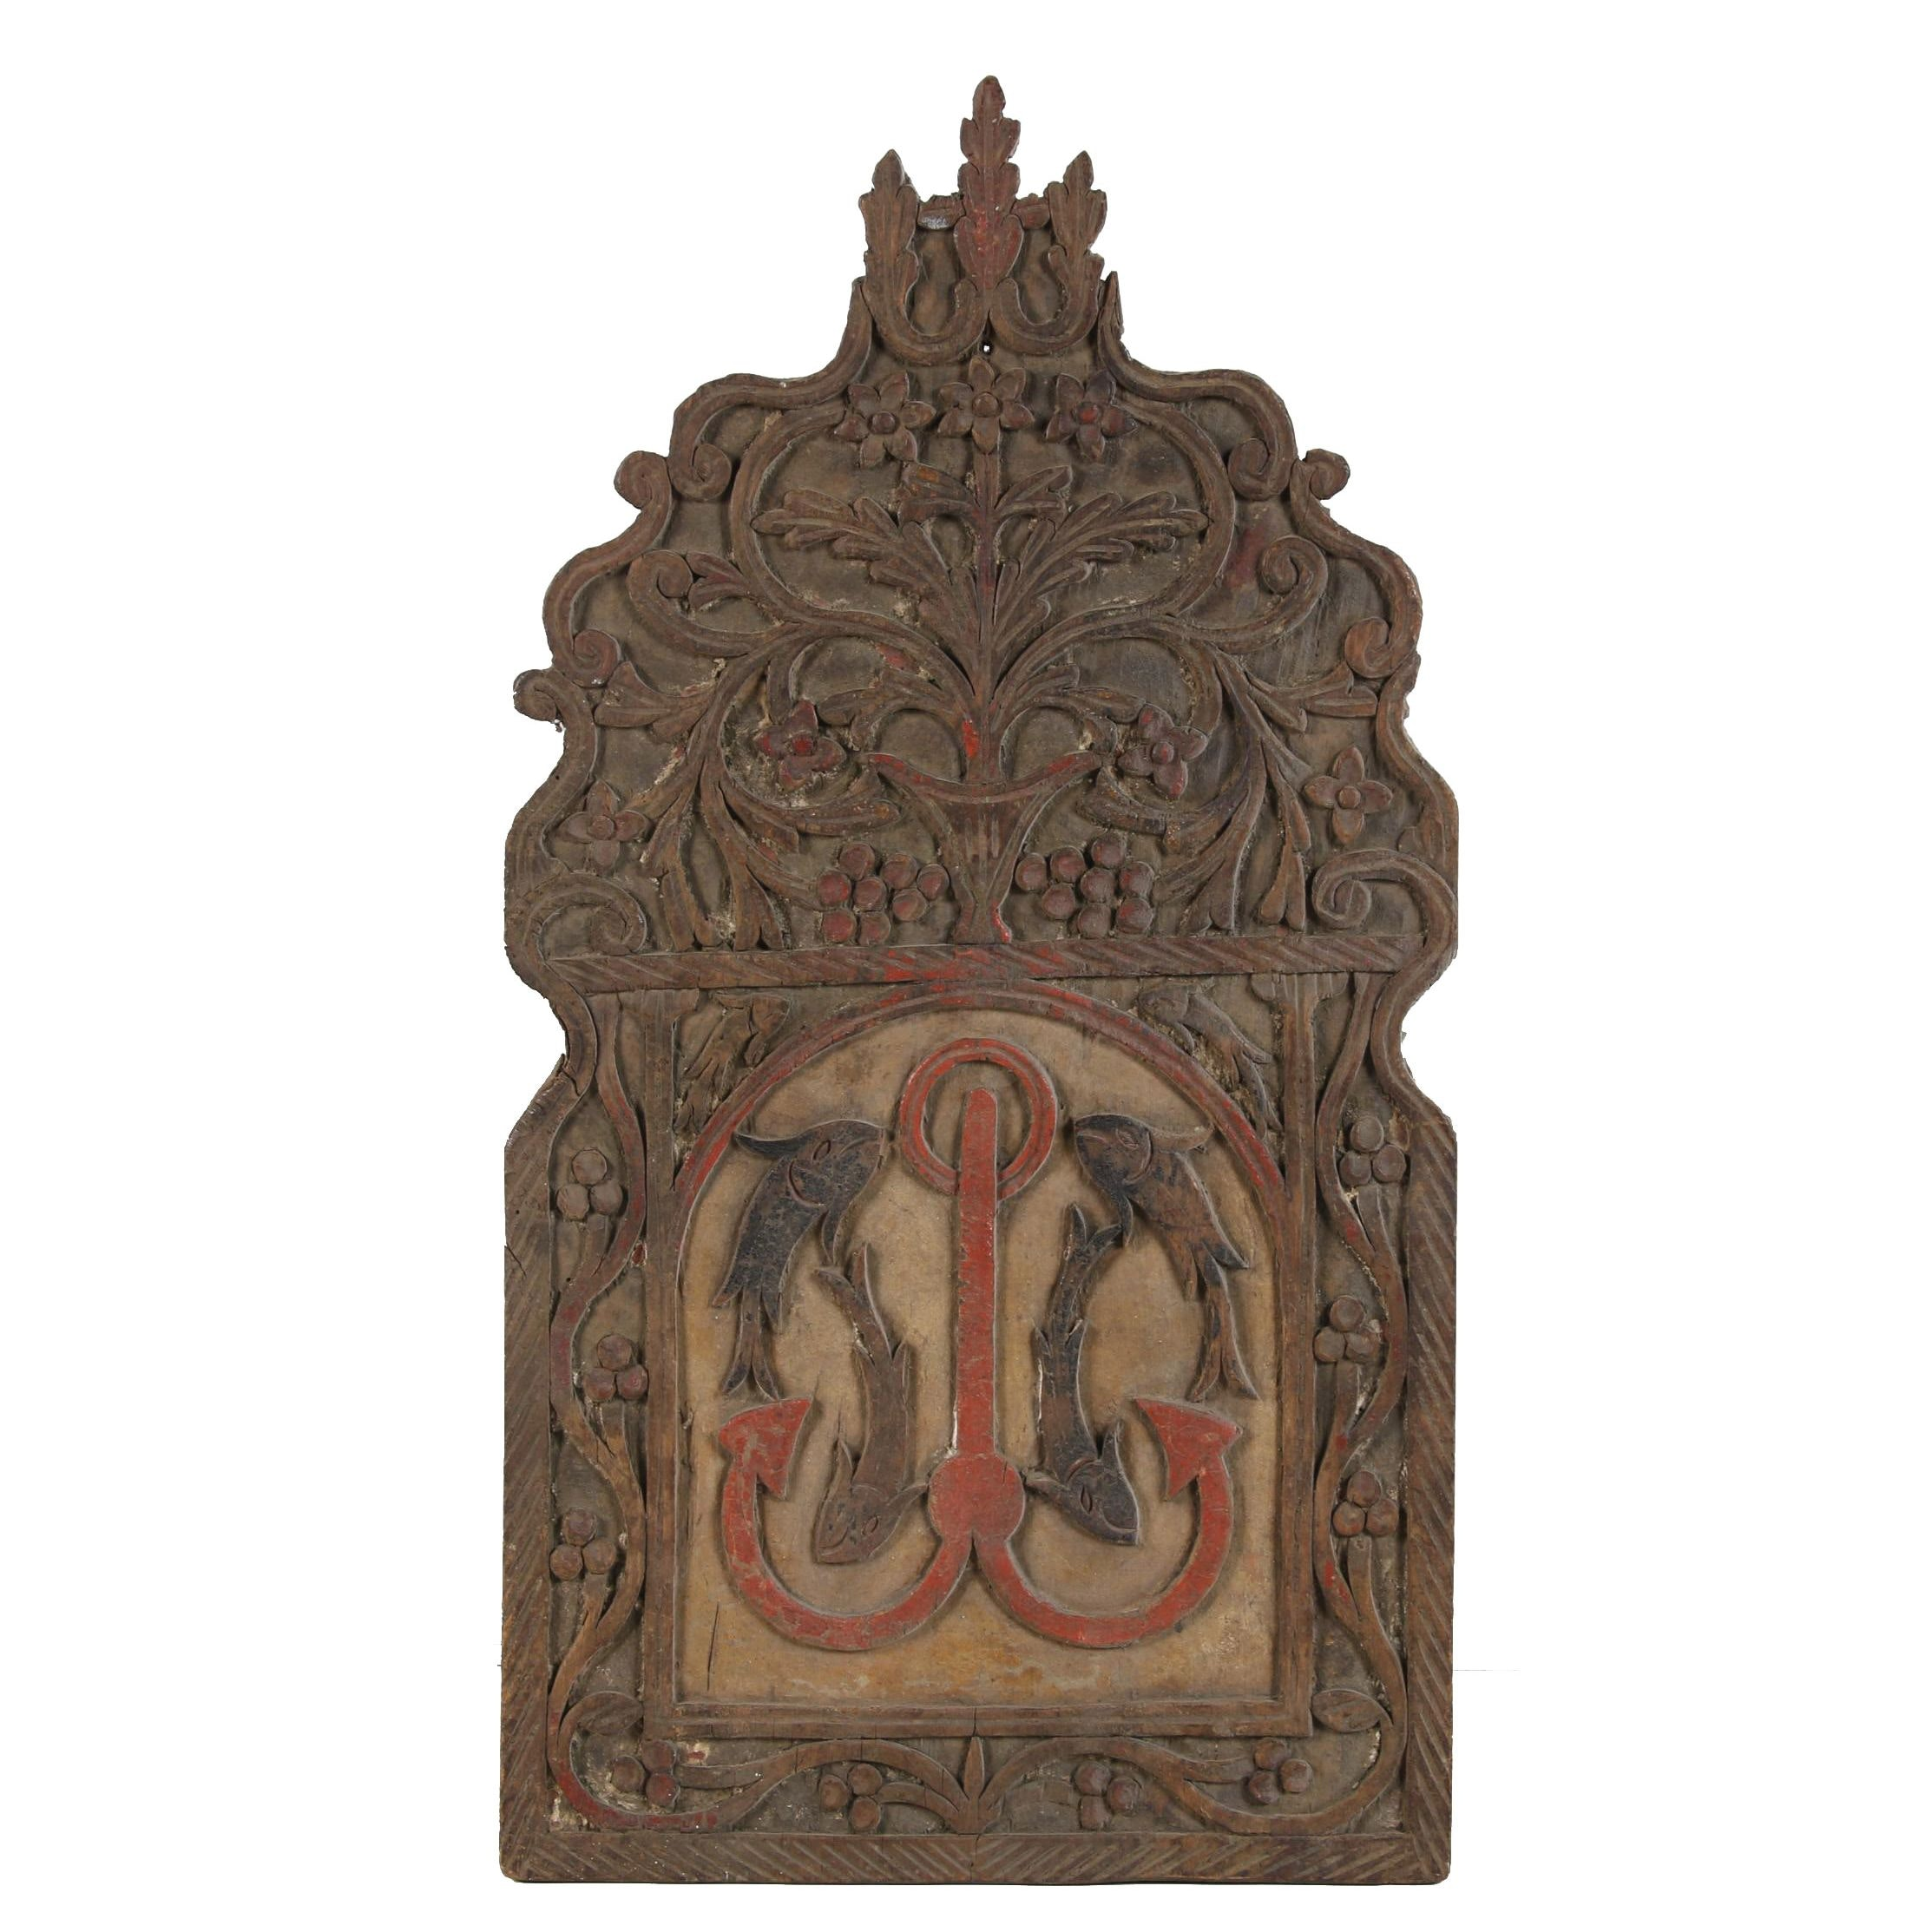 European Carved Polychrome Wood Sign Symbolic of Jesus Christ, Probably 19th C